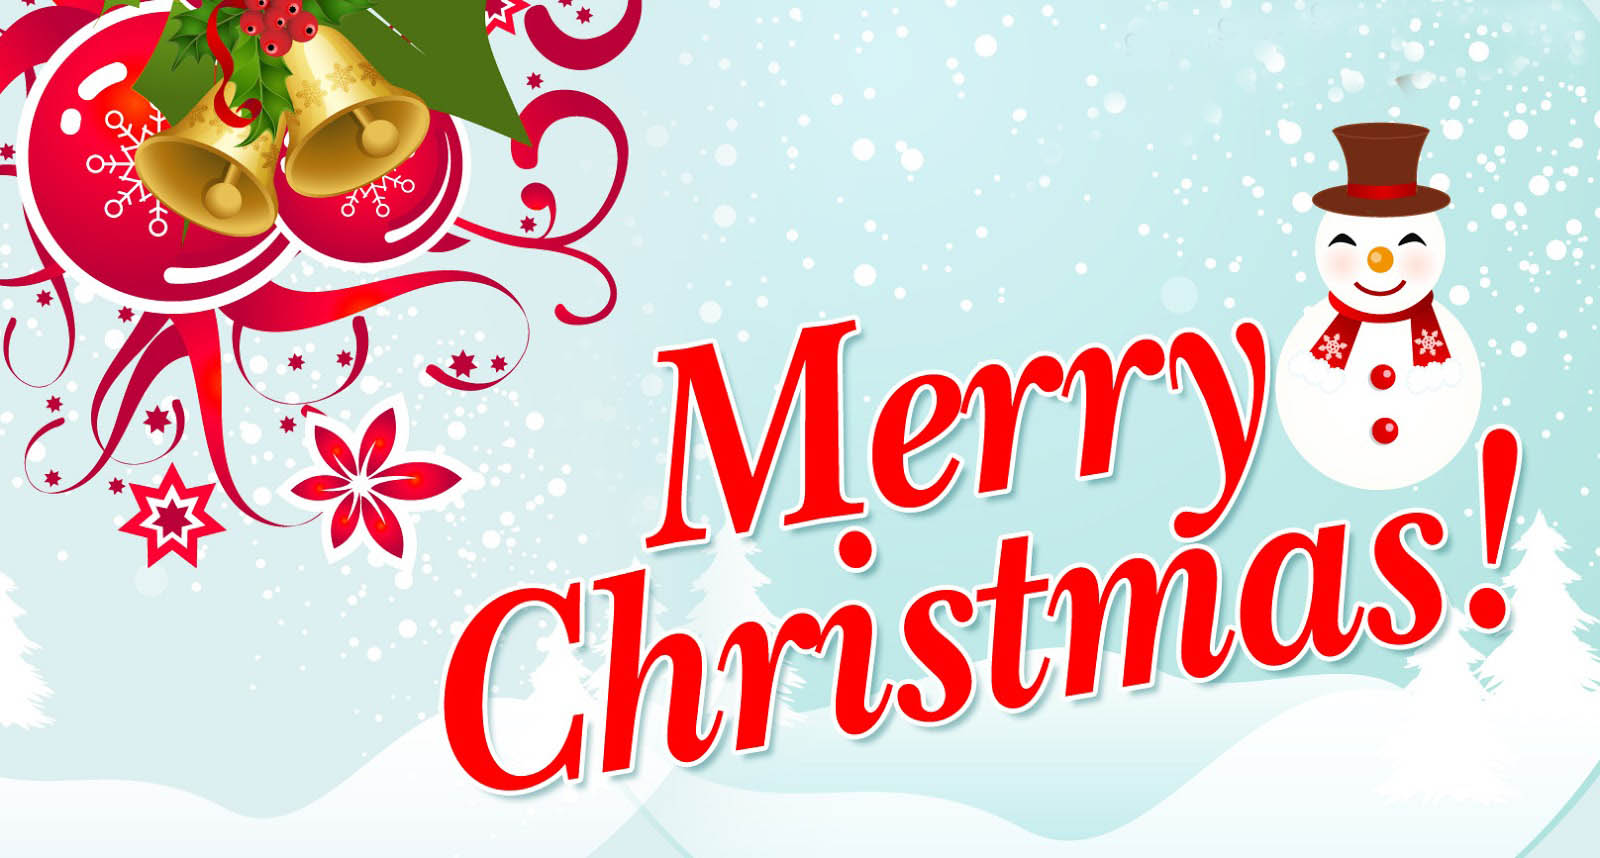 Merry Christmas Images 2019 Christmas Photos Pictures Pics